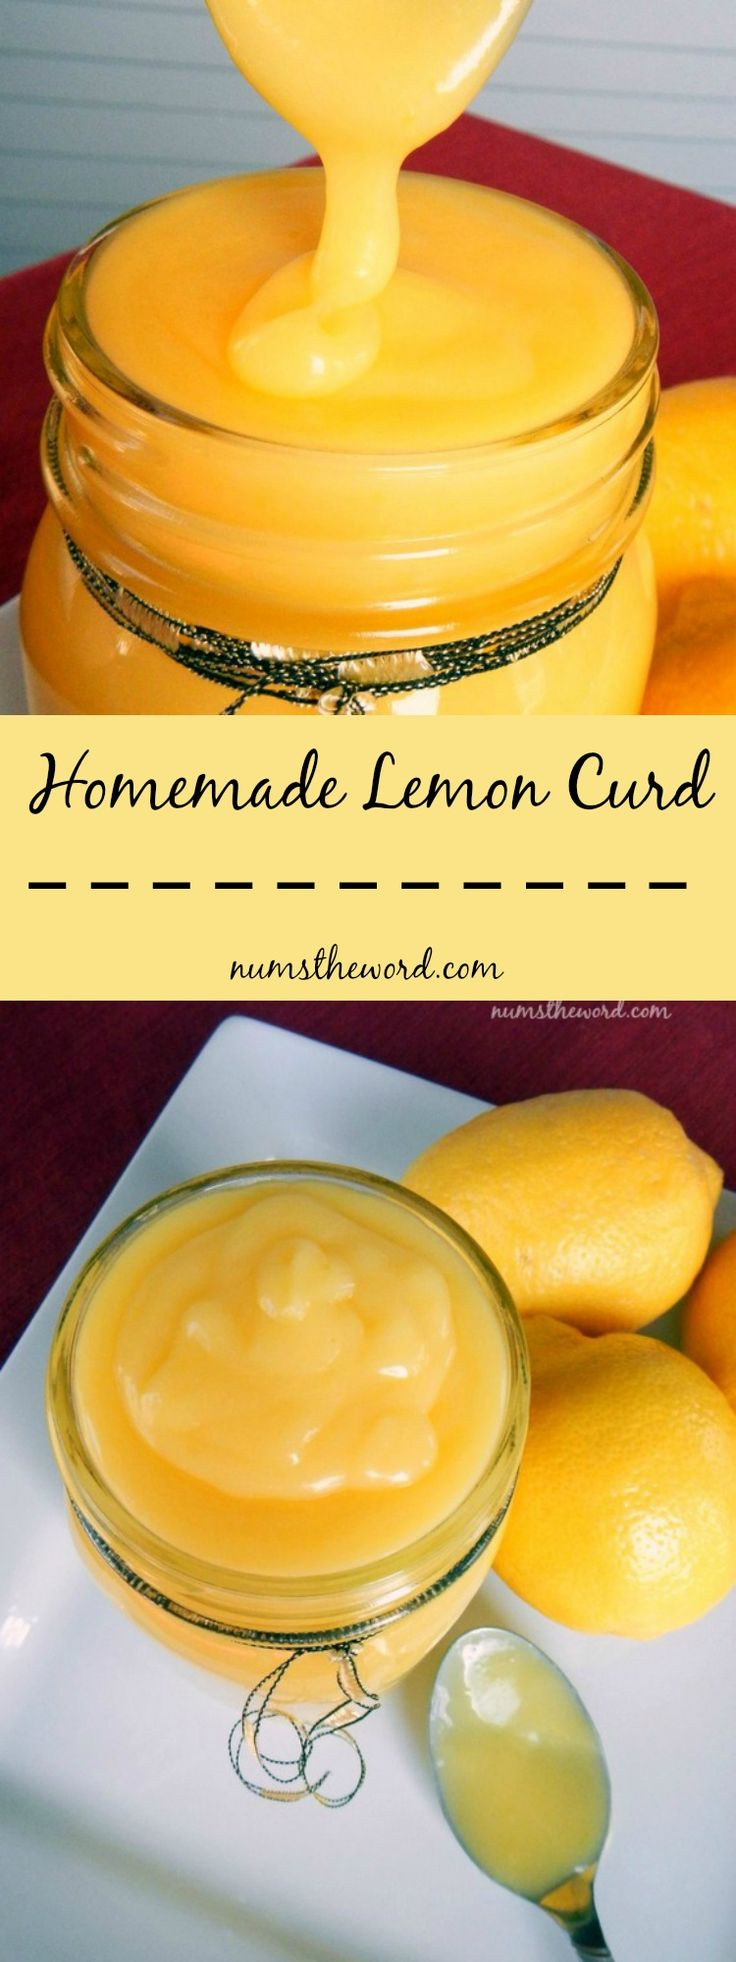 The most amazing lemon curd you'll ever eat. Smooth, creamy and oh so good! 6…